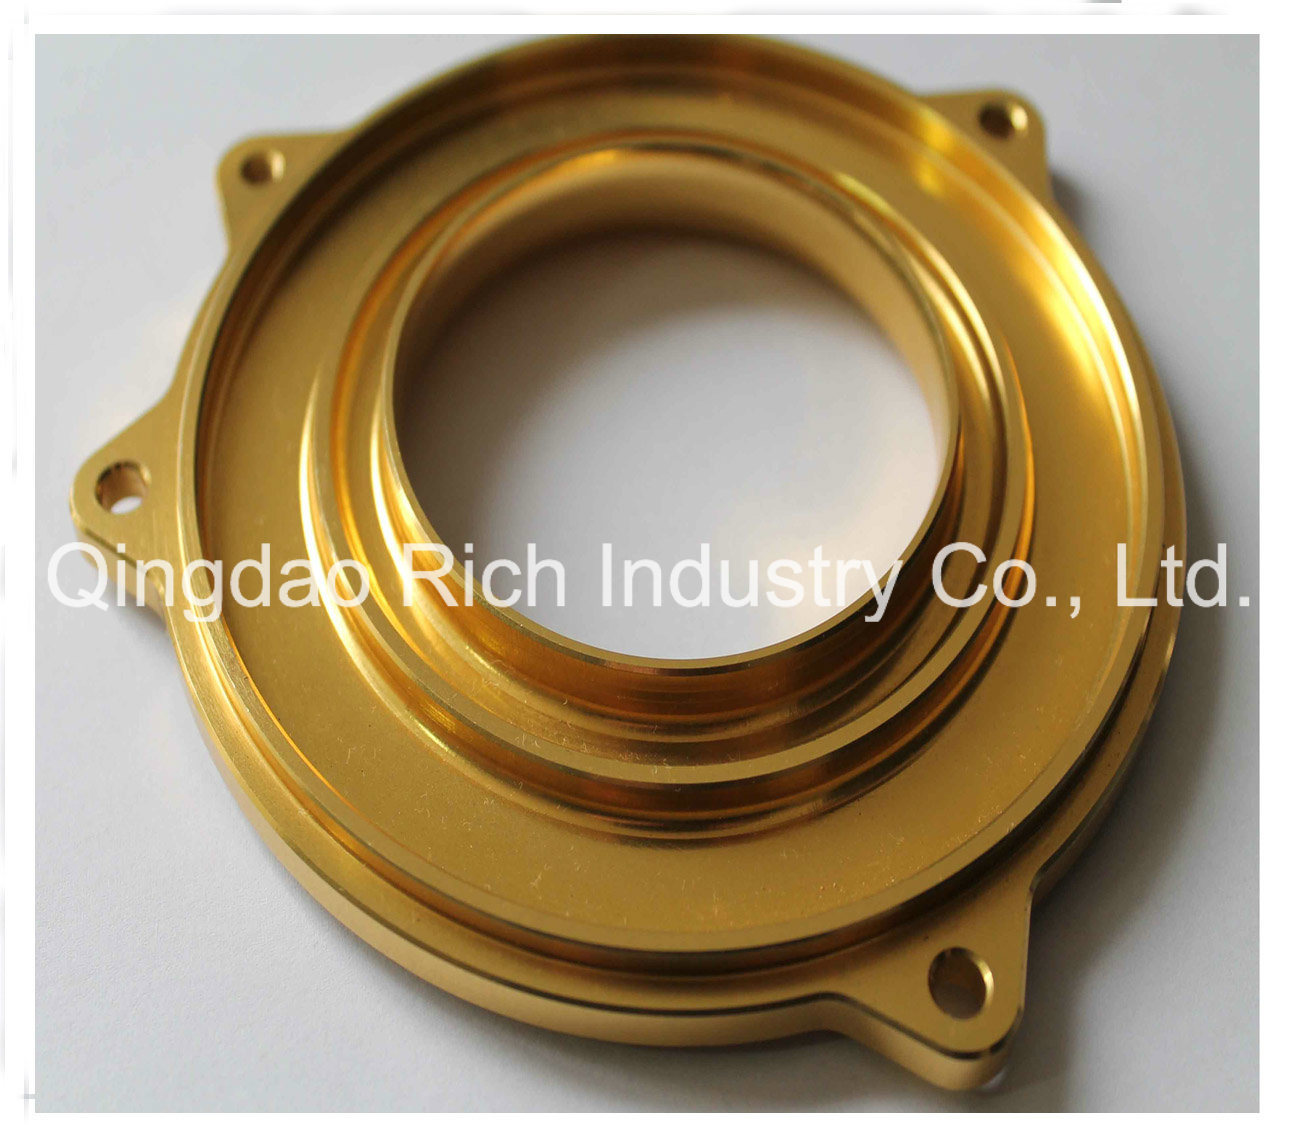 Forging Brass Parts/Precision Forging Part/Brass Forging Part/CNC Machining/Forging/Machinery Part/Metal Forging Parts/Auto Parts/Steel Forging Part/Aluminium